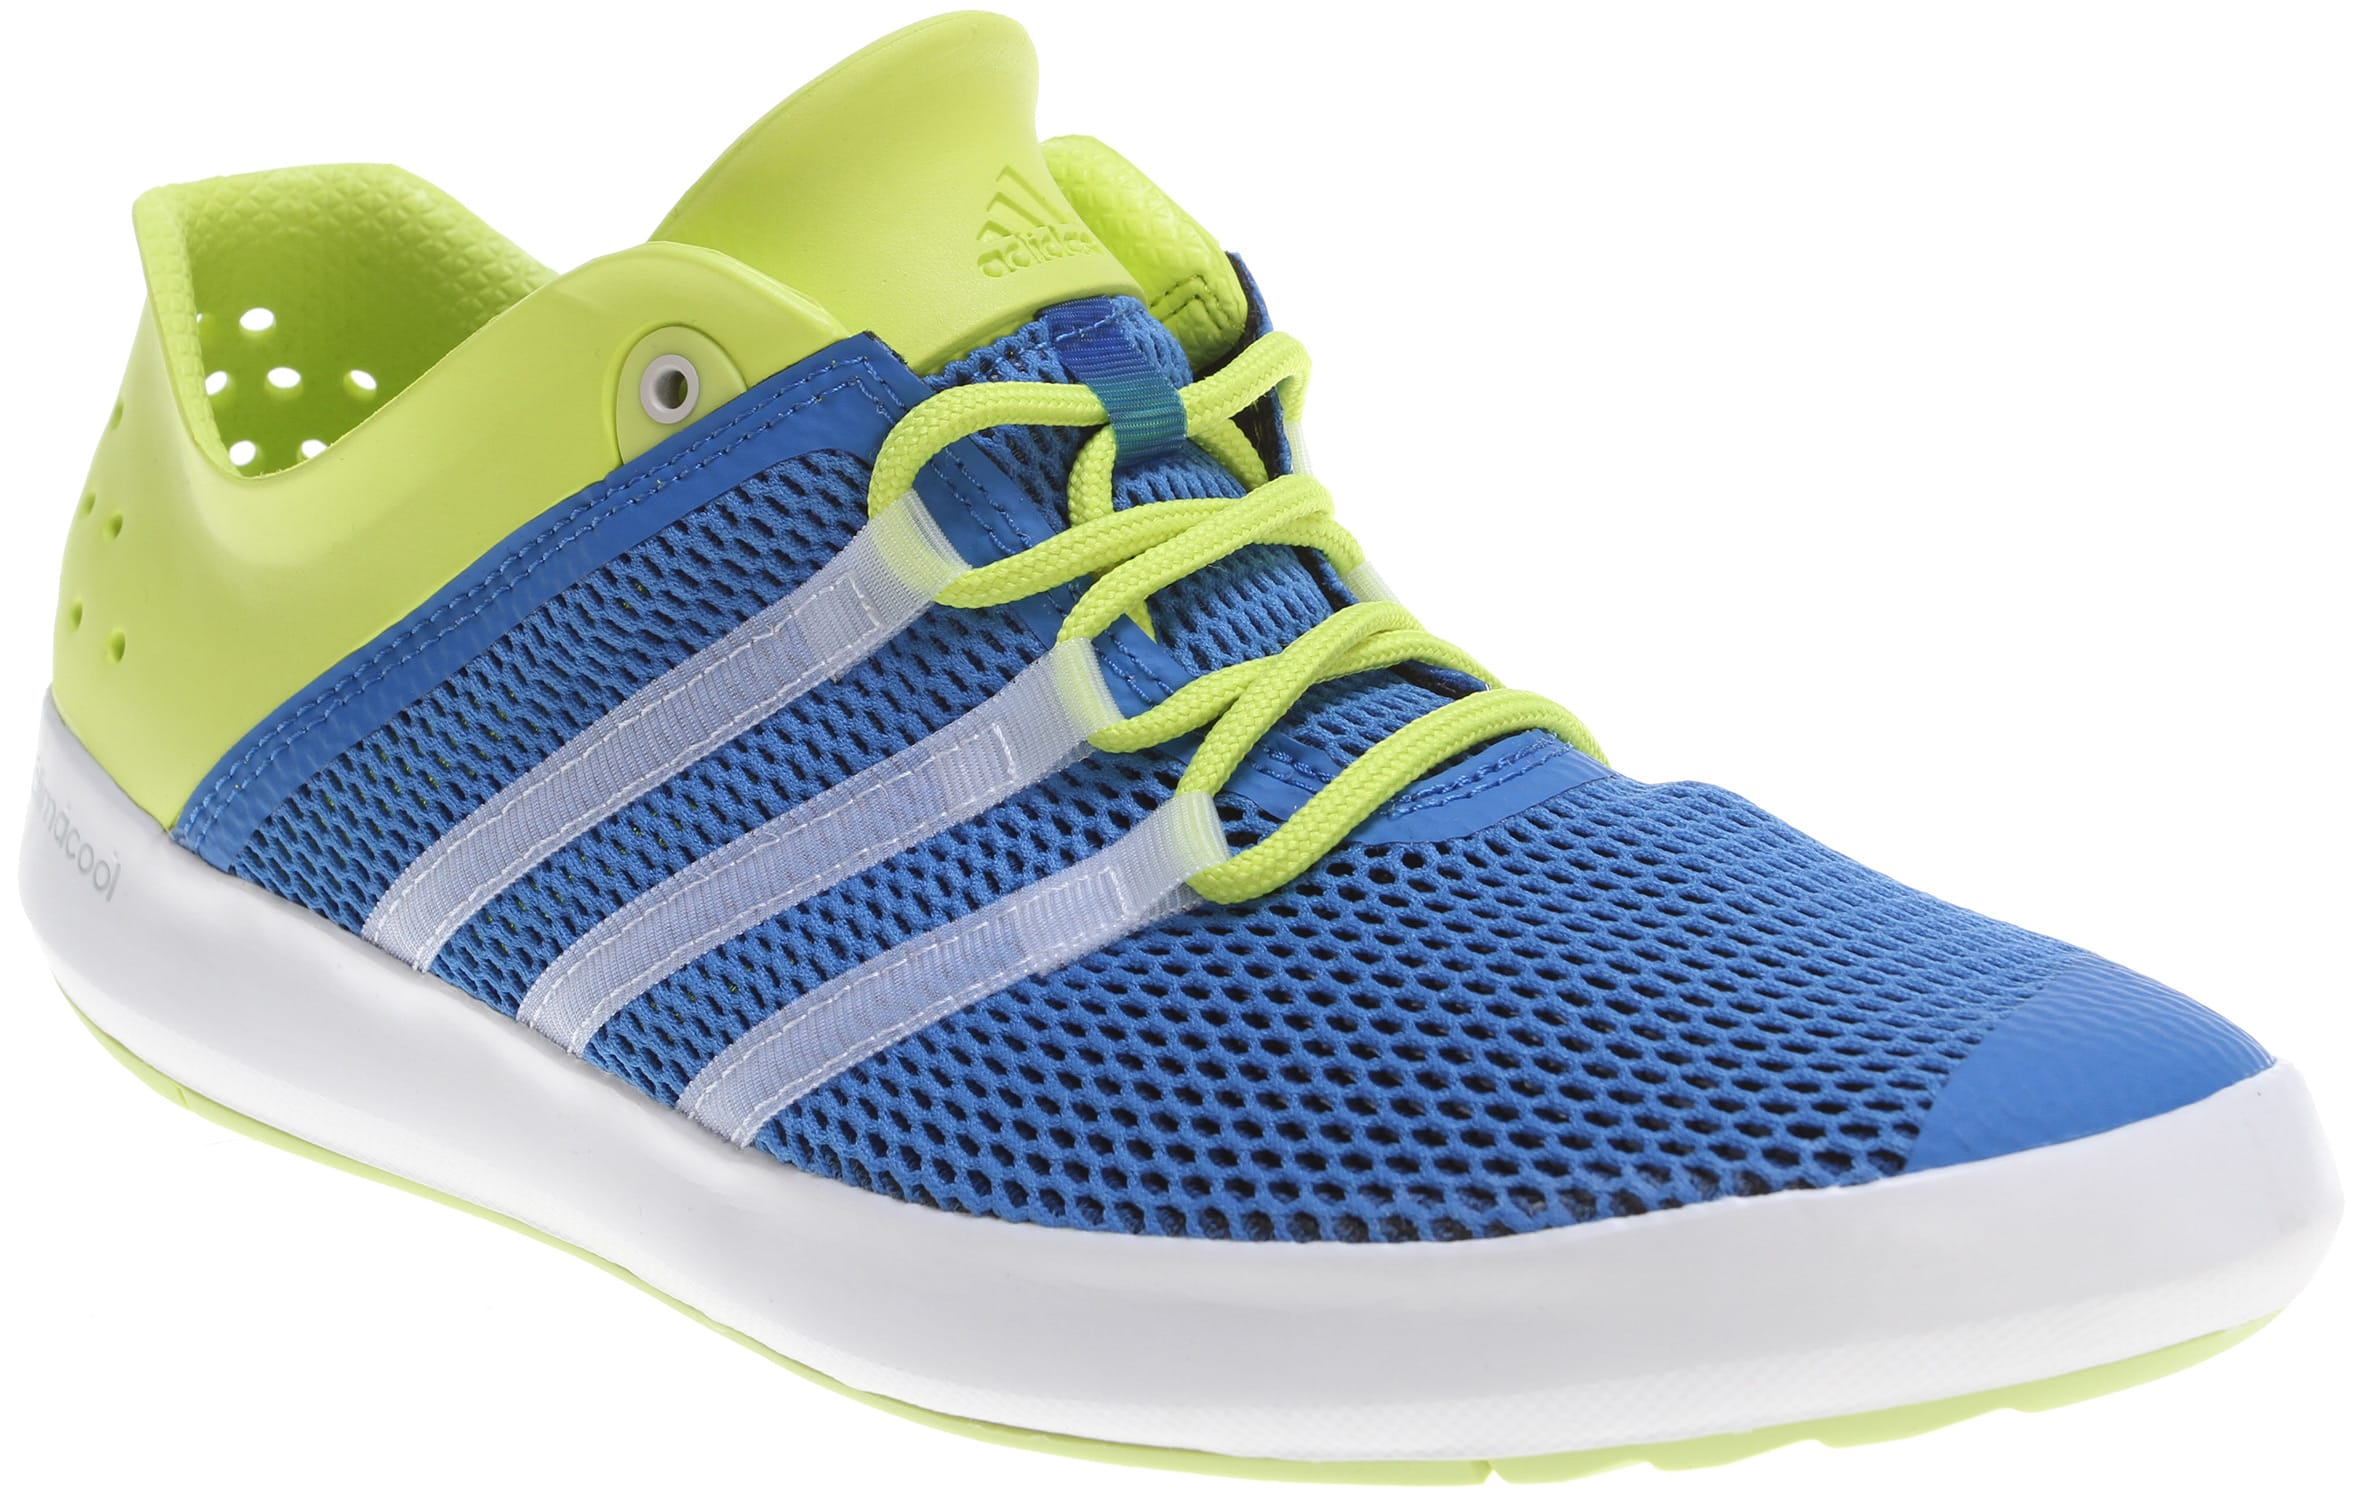 On Sale Adidas Climacool Boat Pure Water Shoes Up To 50 Off